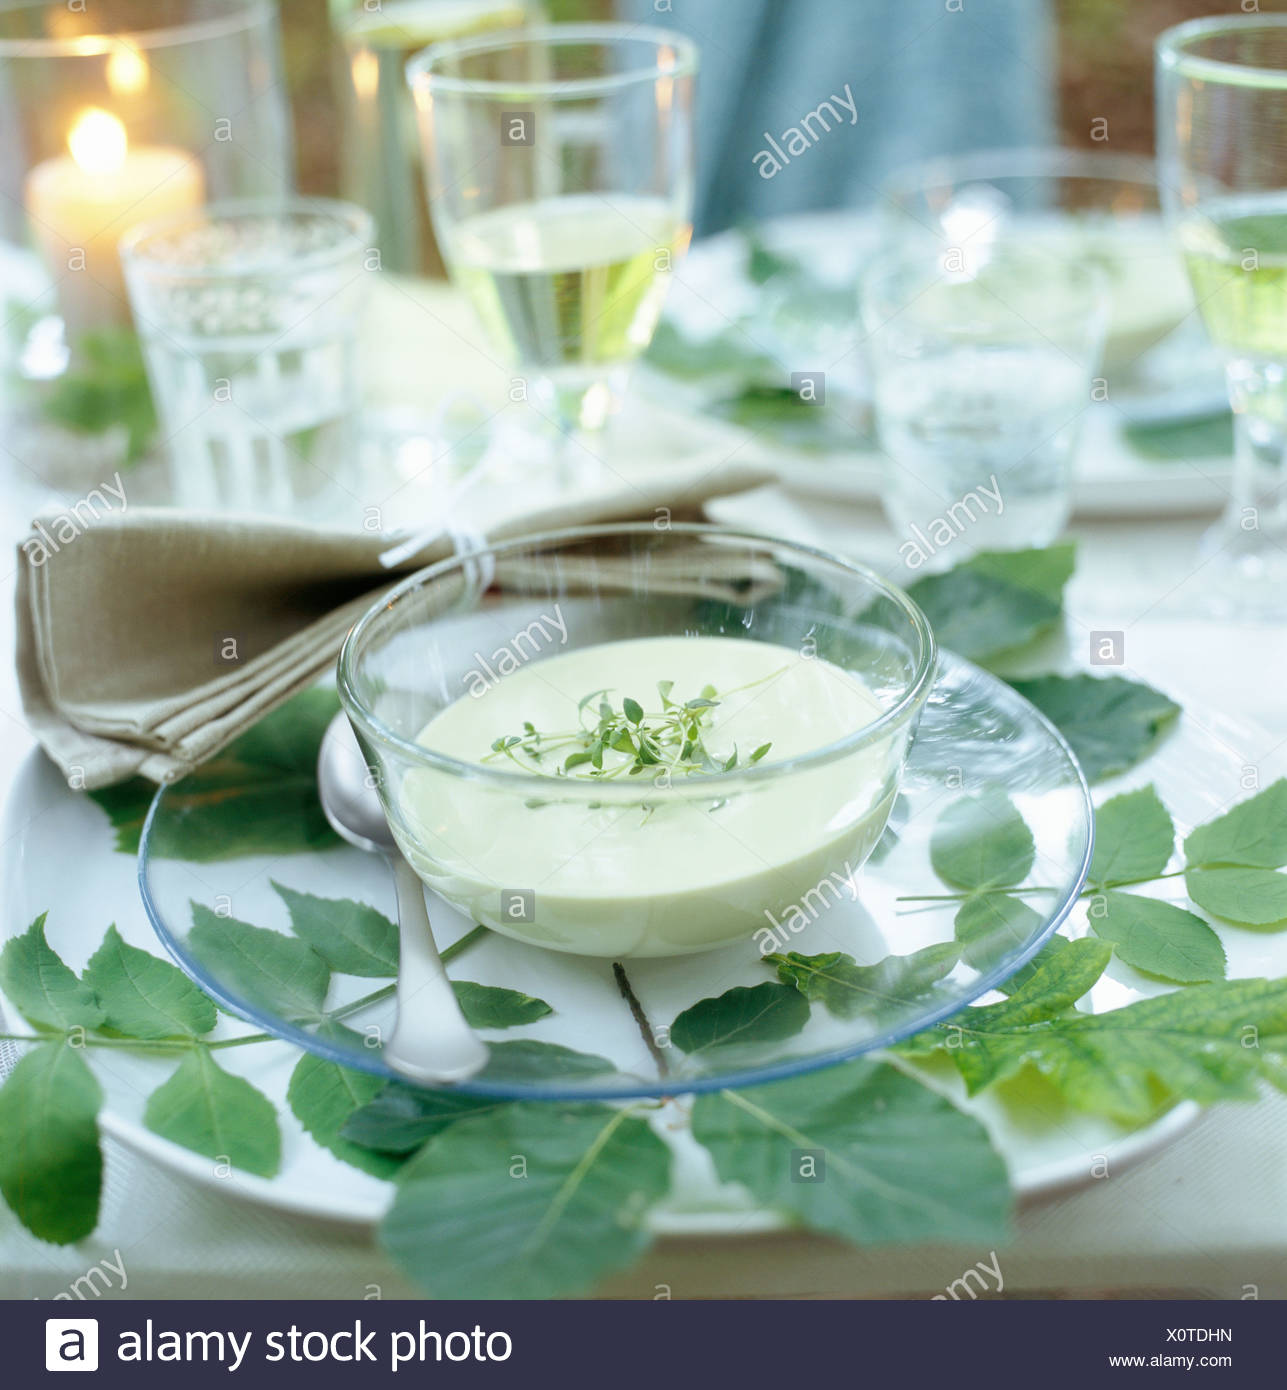 A laid table, Velamsund, Sweden. - Stock Image